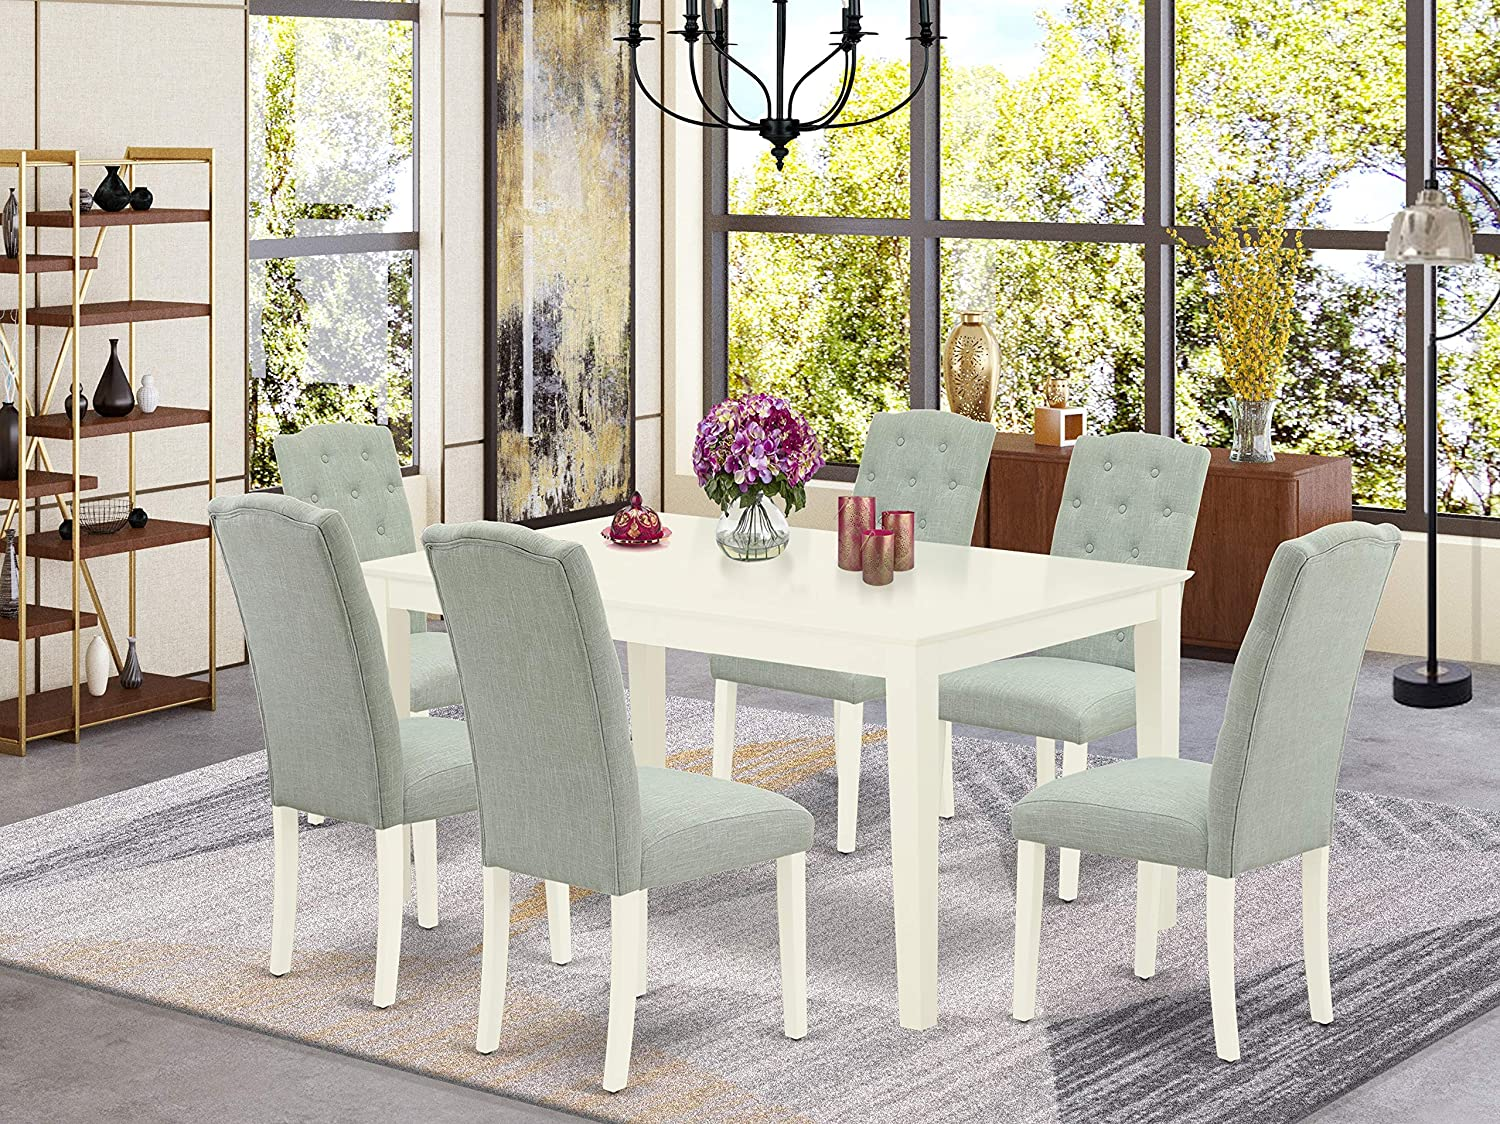 Amazon Com East West Furniture Cace7 Lwh 15 7pc Dinette Set Includes A Rectangular Kitchen Table And Six Parson Chairs With Baby Blue Fabric Linen White Finish Table Chair Sets